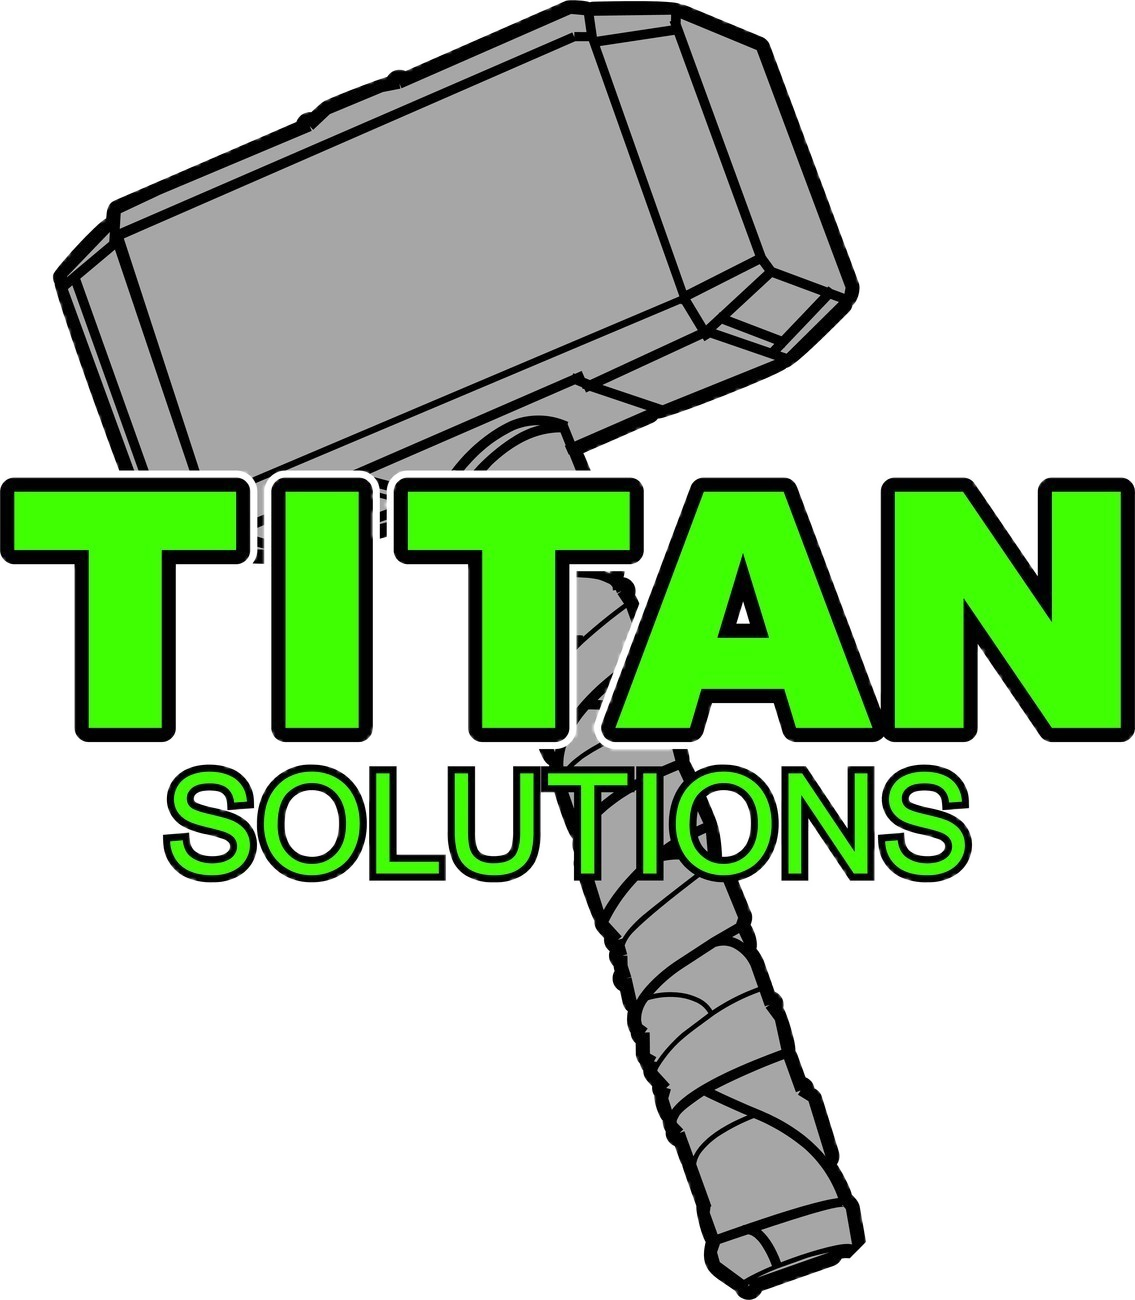 Titan Solutions- Oilfield Containment and Rental Equipment